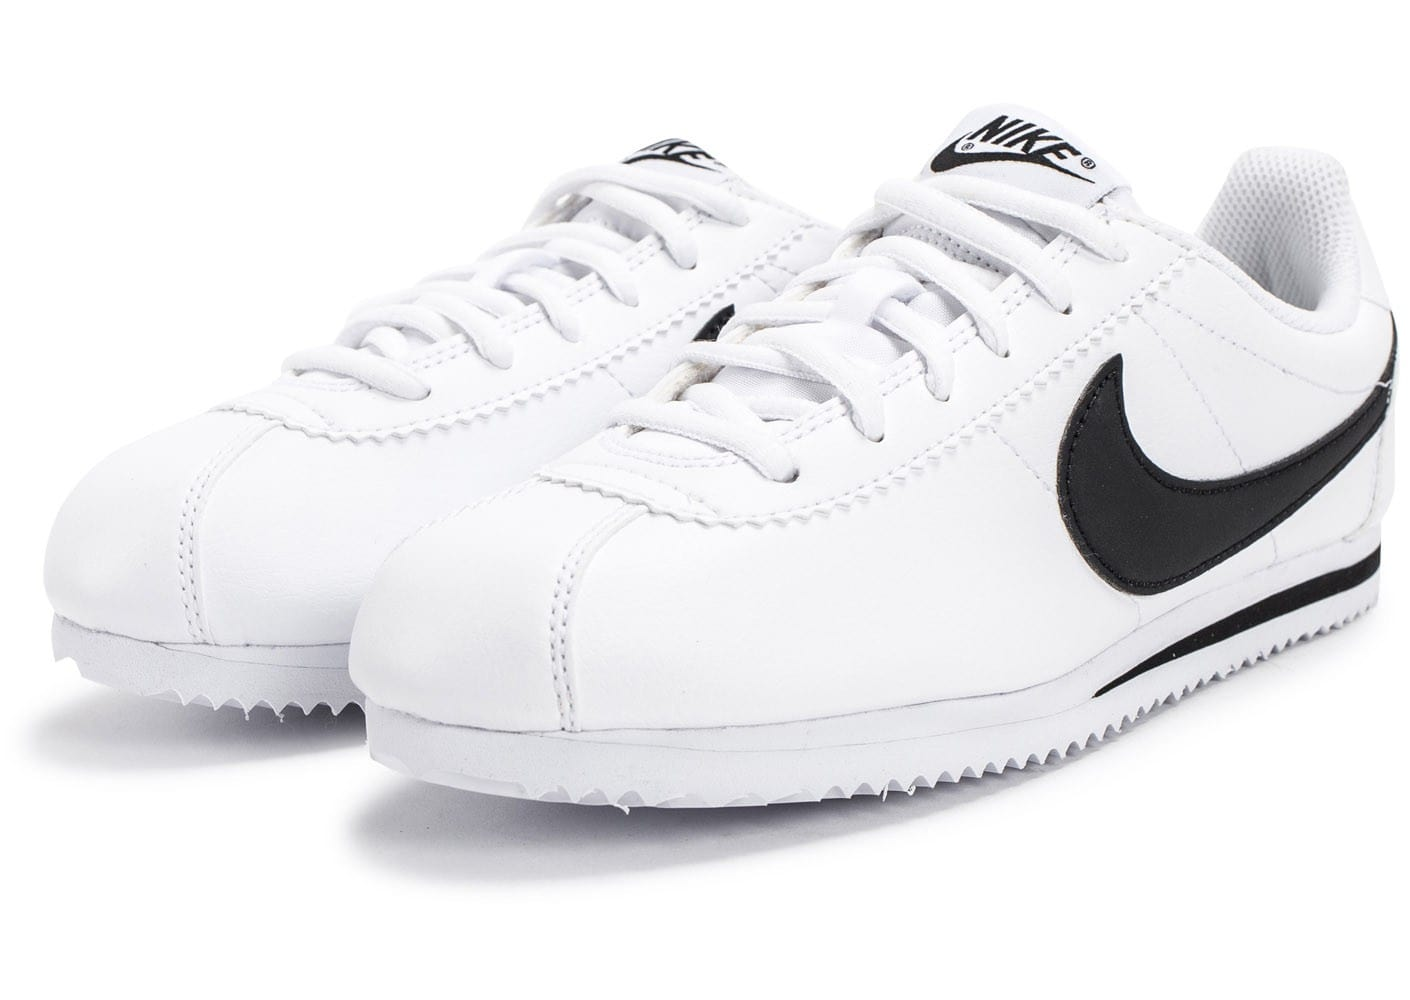 nike cortez junior blanche et noire chaussures enfant chausport. Black Bedroom Furniture Sets. Home Design Ideas